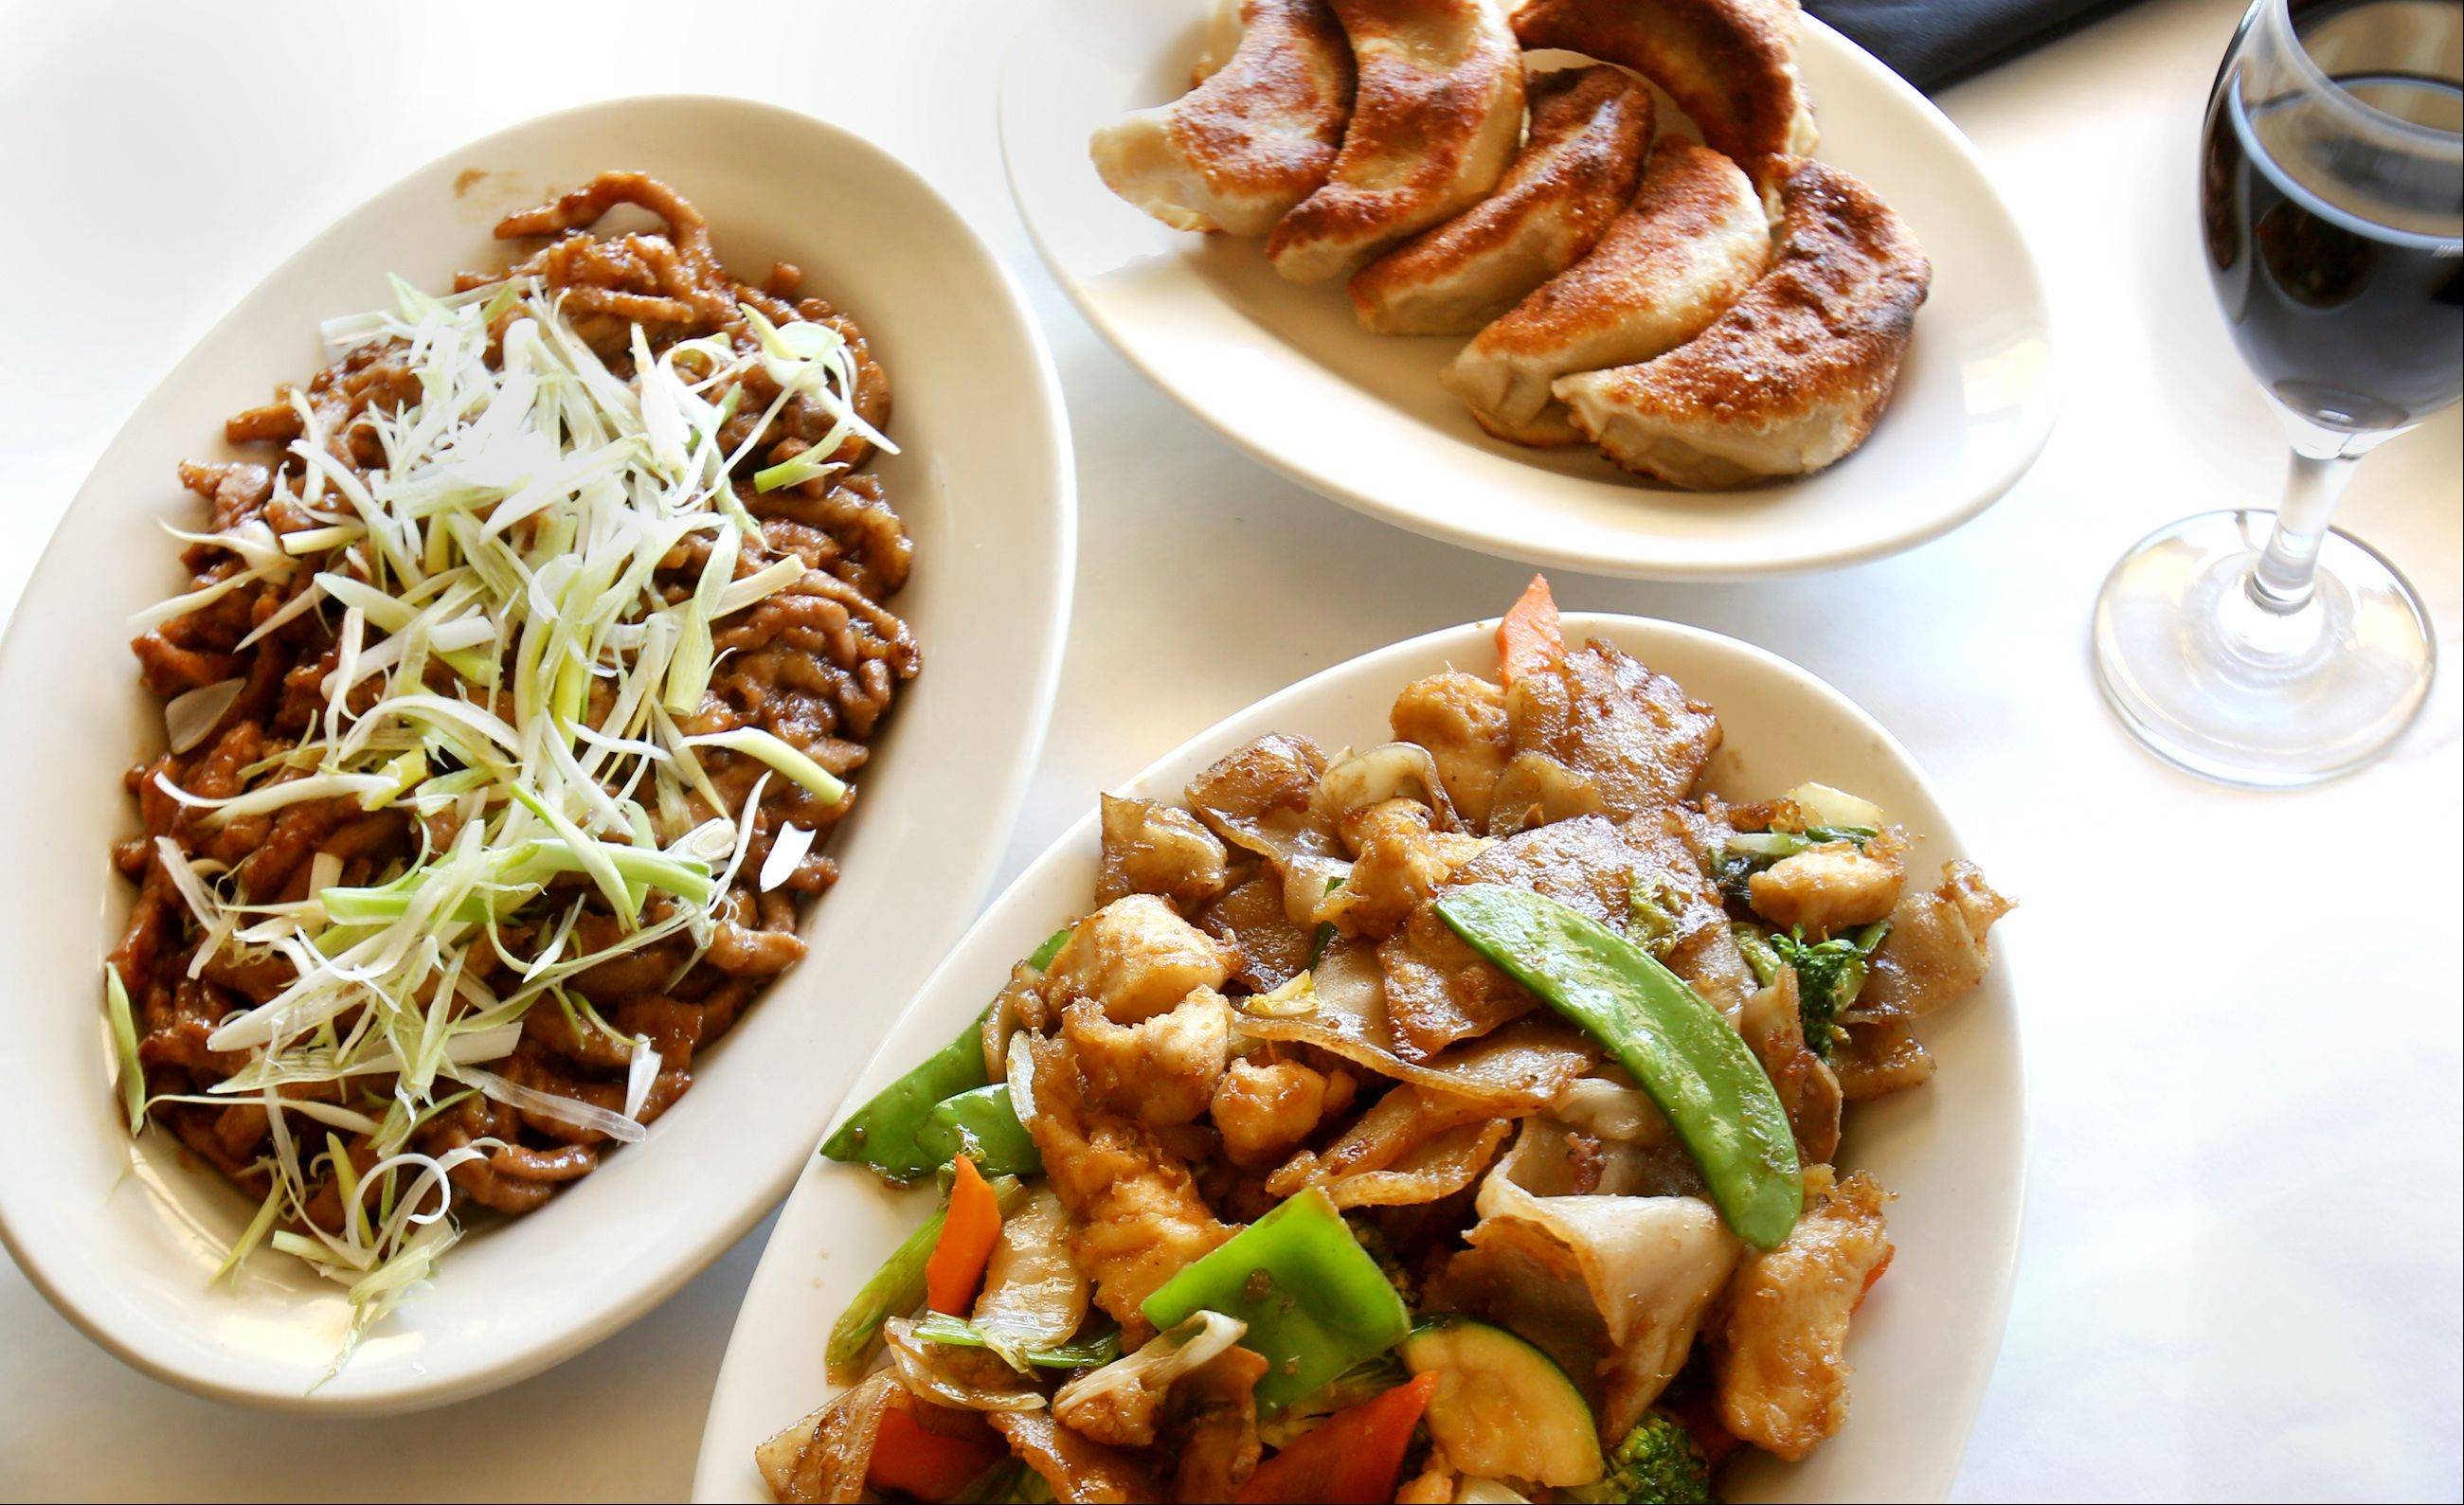 Discover Hua Ting: Chinese restaurant in Hinsdale worth exploring